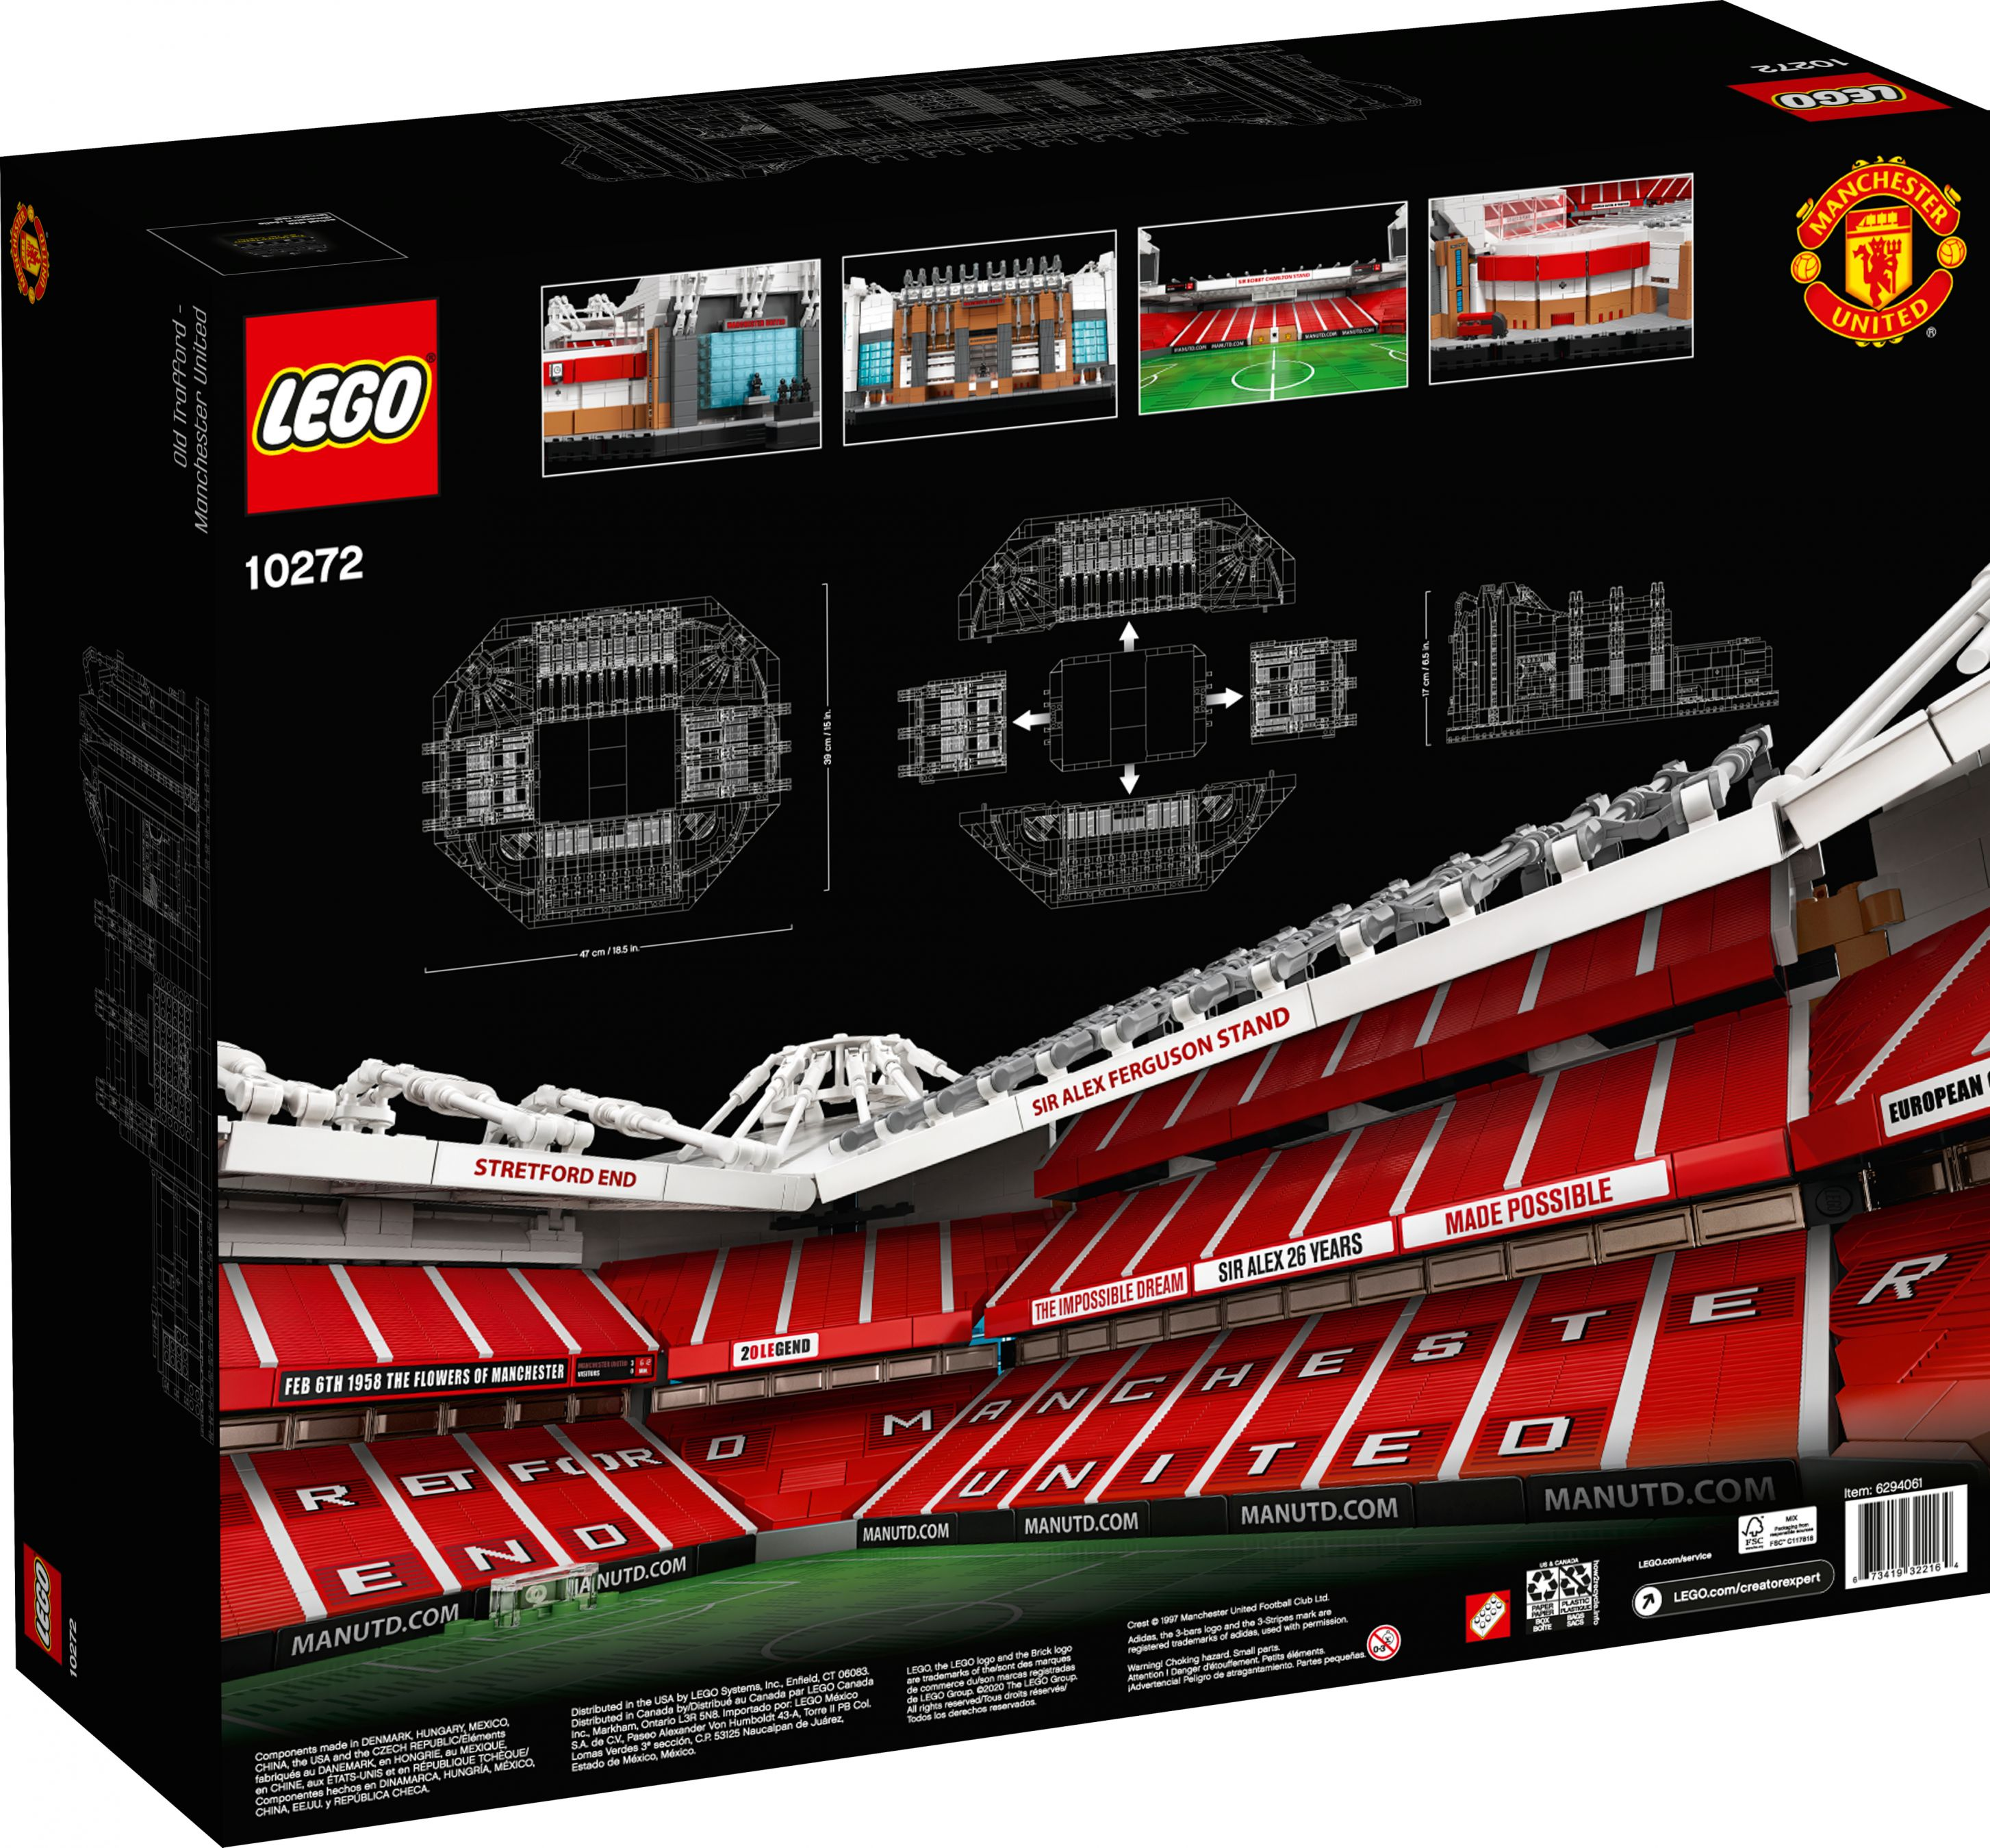 LEGO Advanced Models 10272 Old Trafford - Manchester United LEGO_10272_alt10.jpg